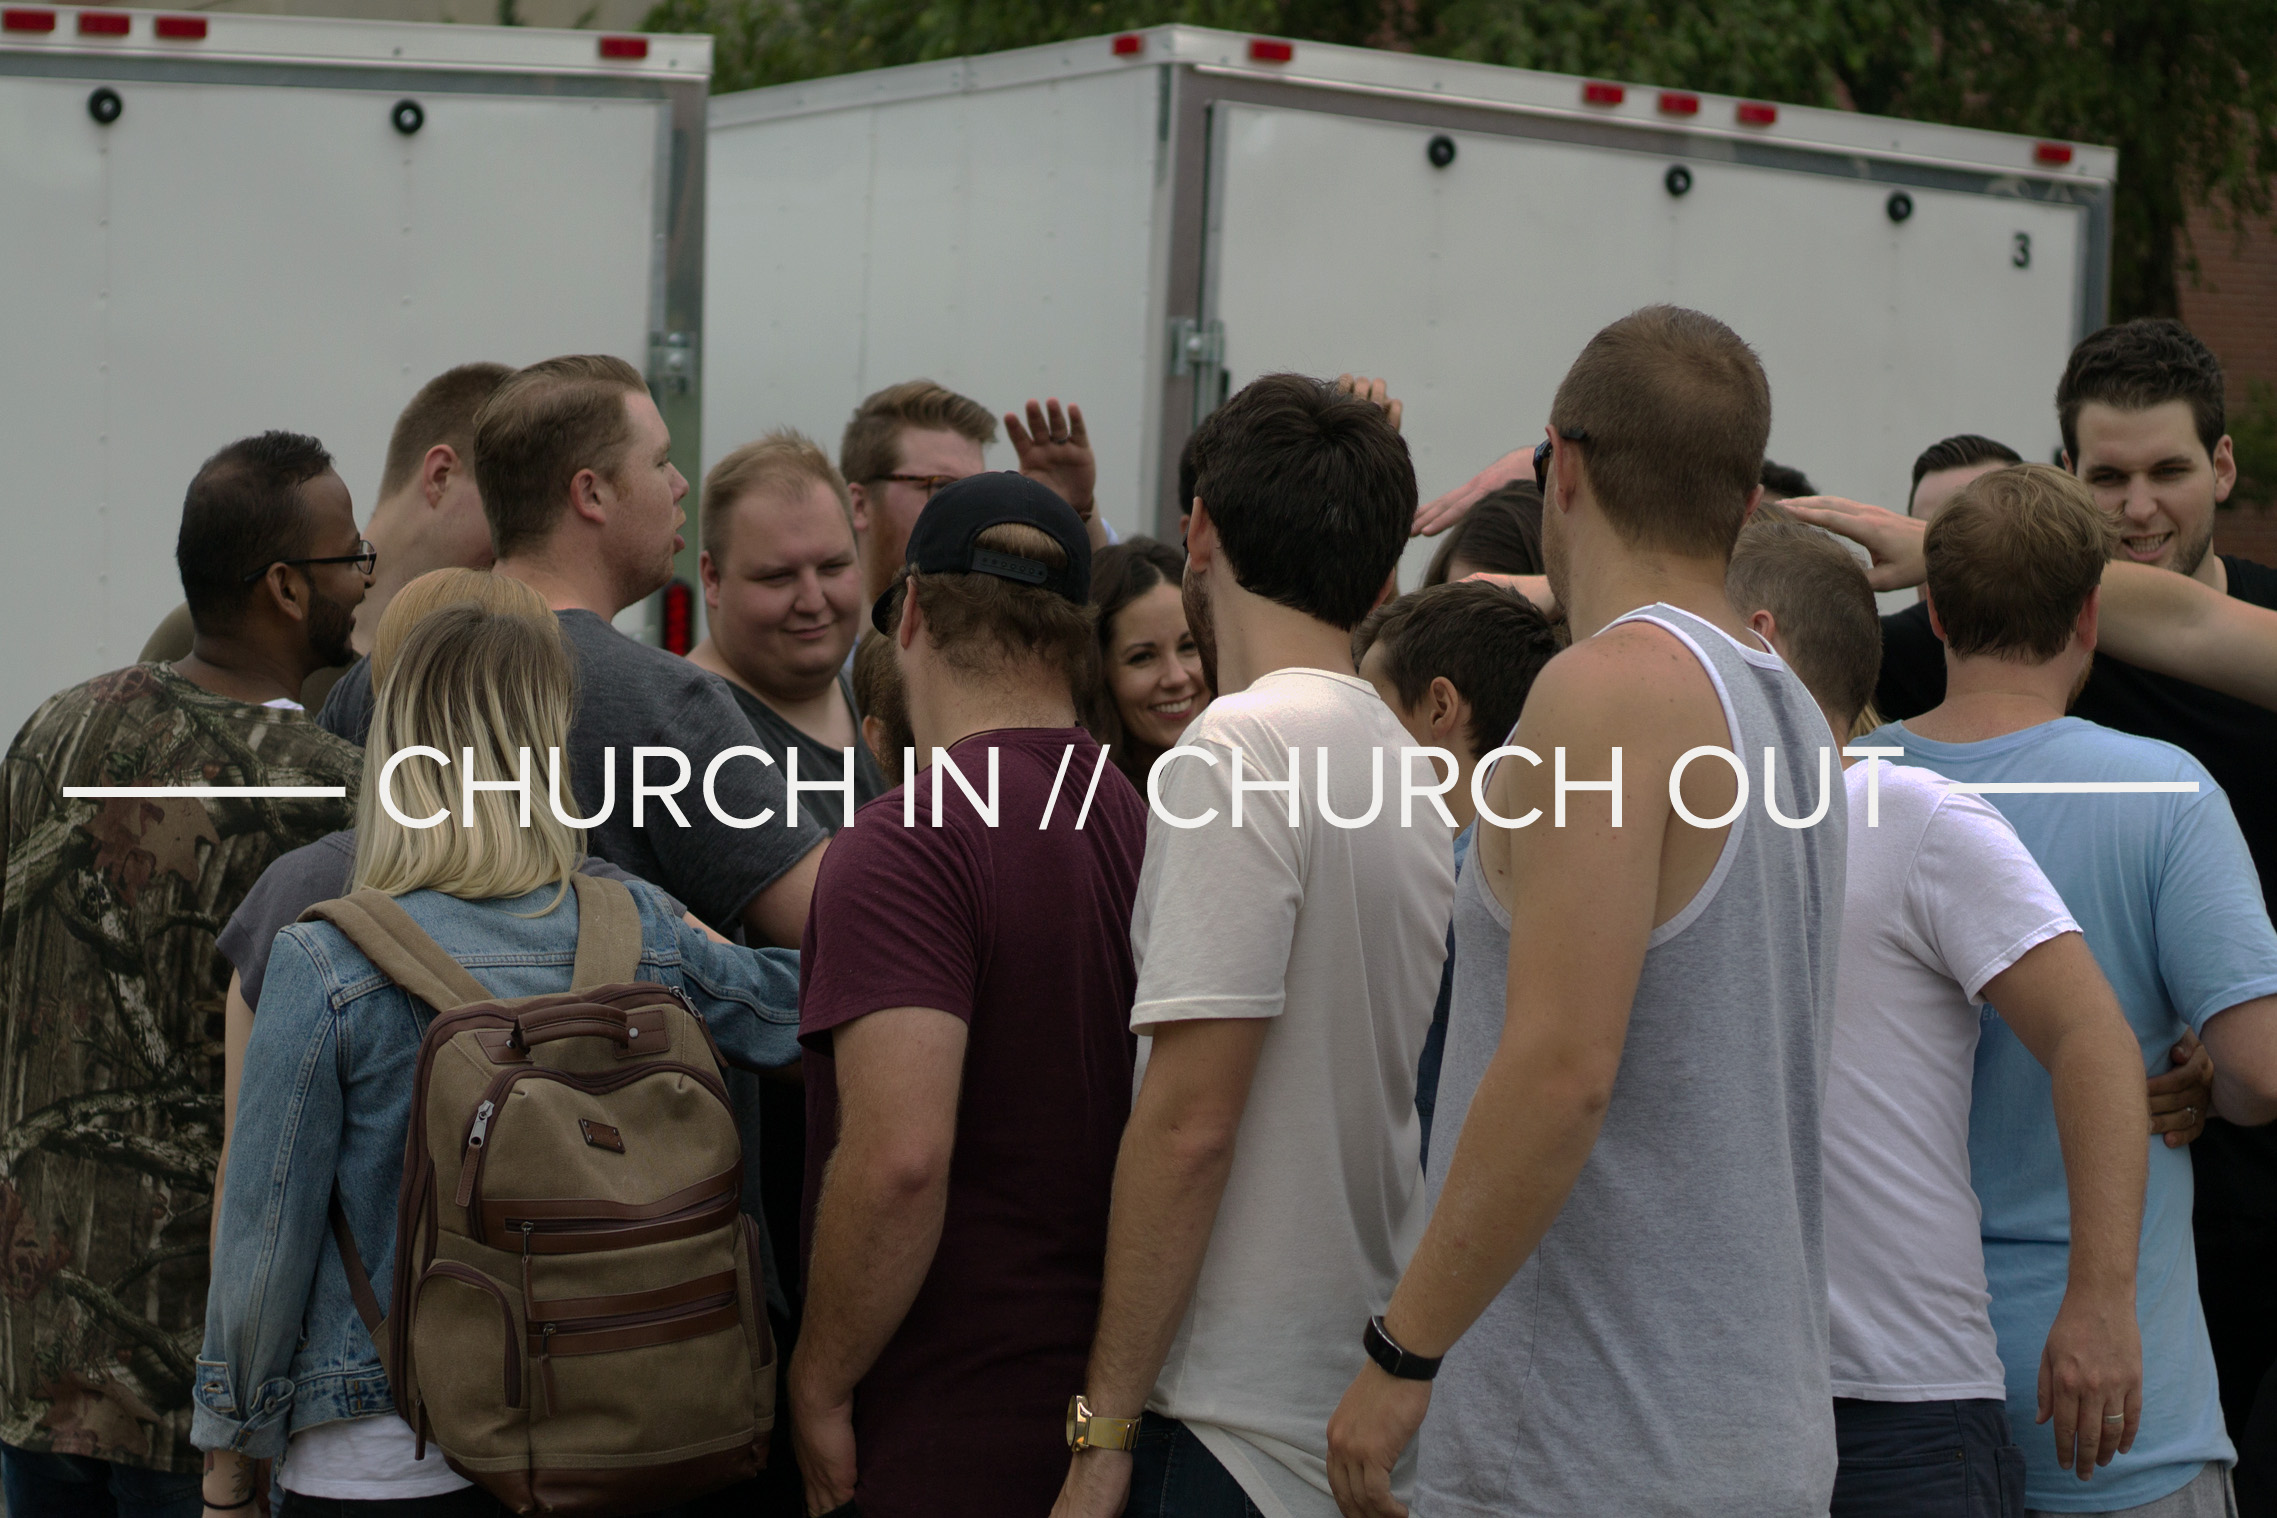 CHURCH IN // CHURCH OUT - It takes a lot to get everything ready for a great Sunday. This incredible team makes sure everything is into place and back together after the day is over.